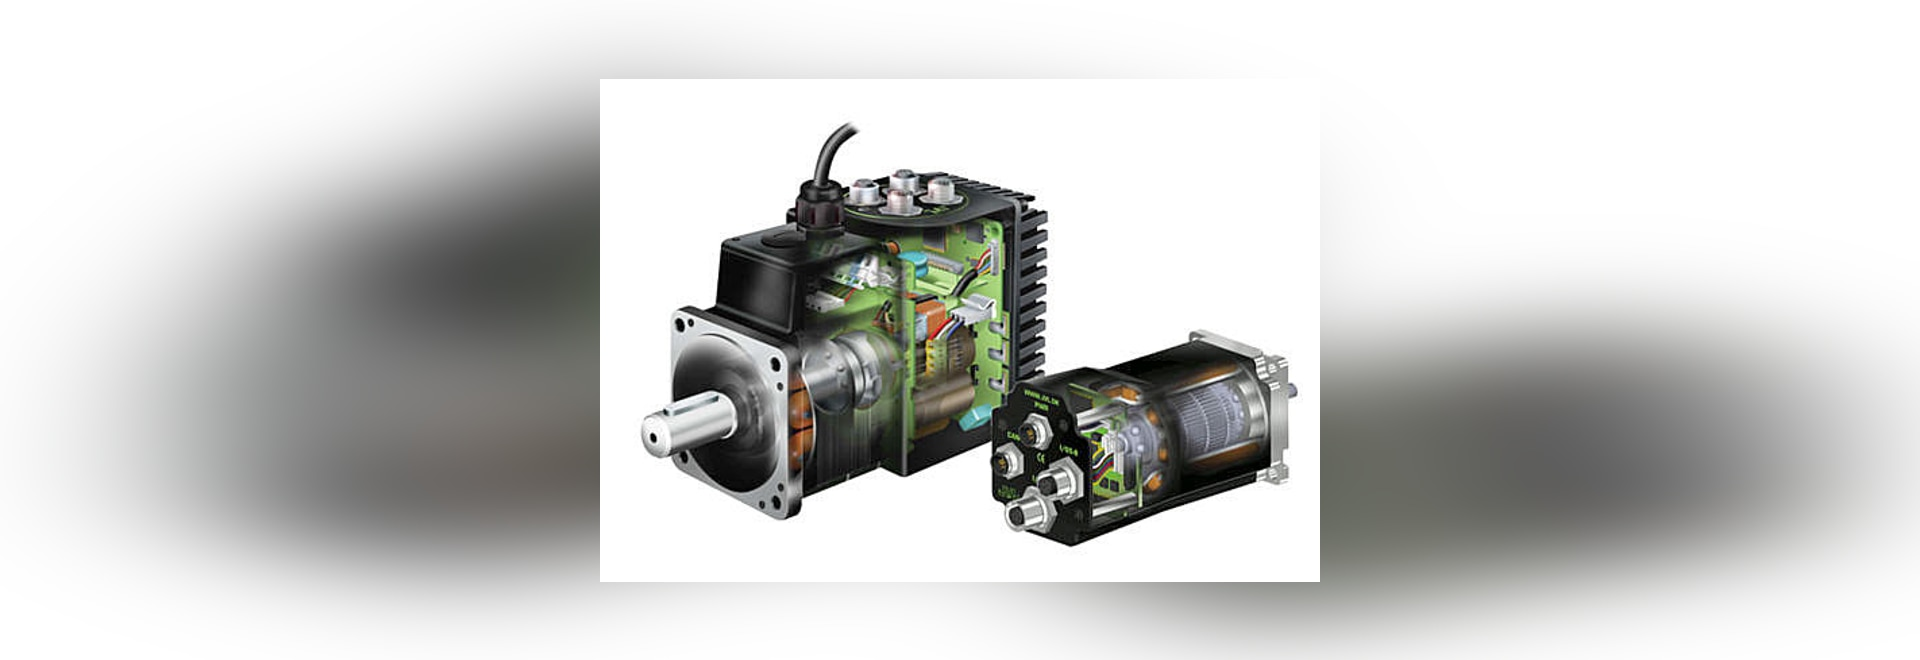 JVL - world leader in integrated servo and stepper motors at SPS IPC Drives 2015